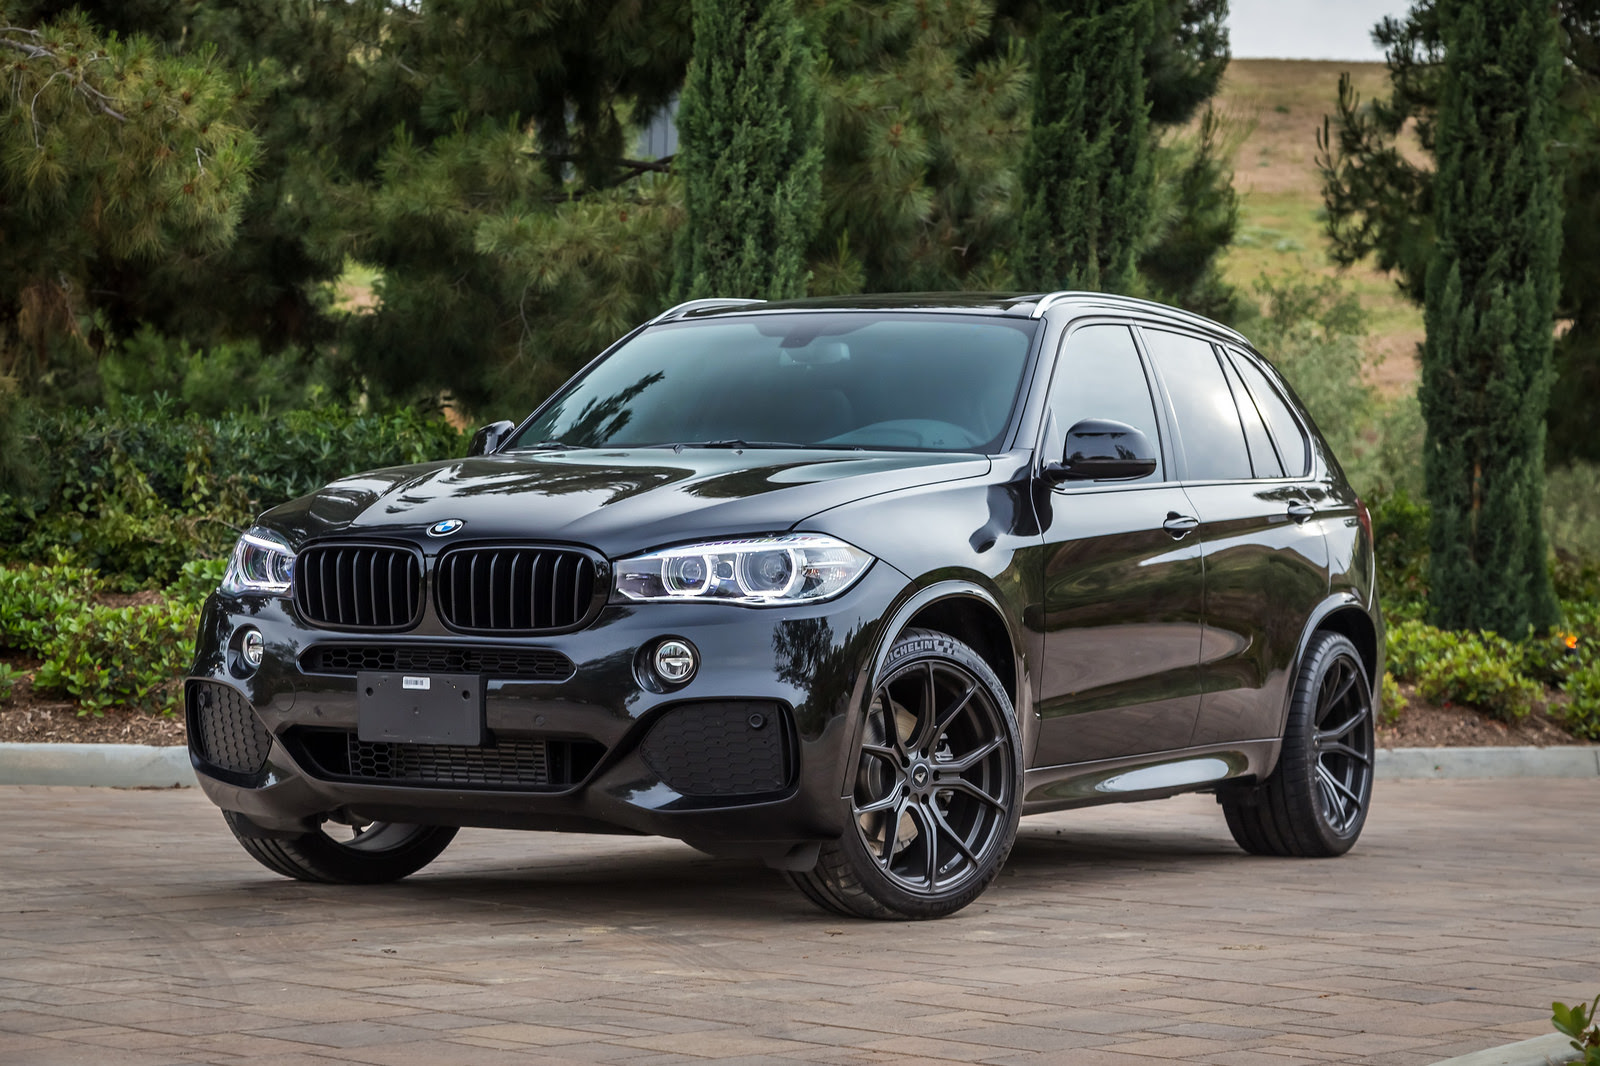 Bmw X5 Wikipedia Bmw Foto And Picture In The Word